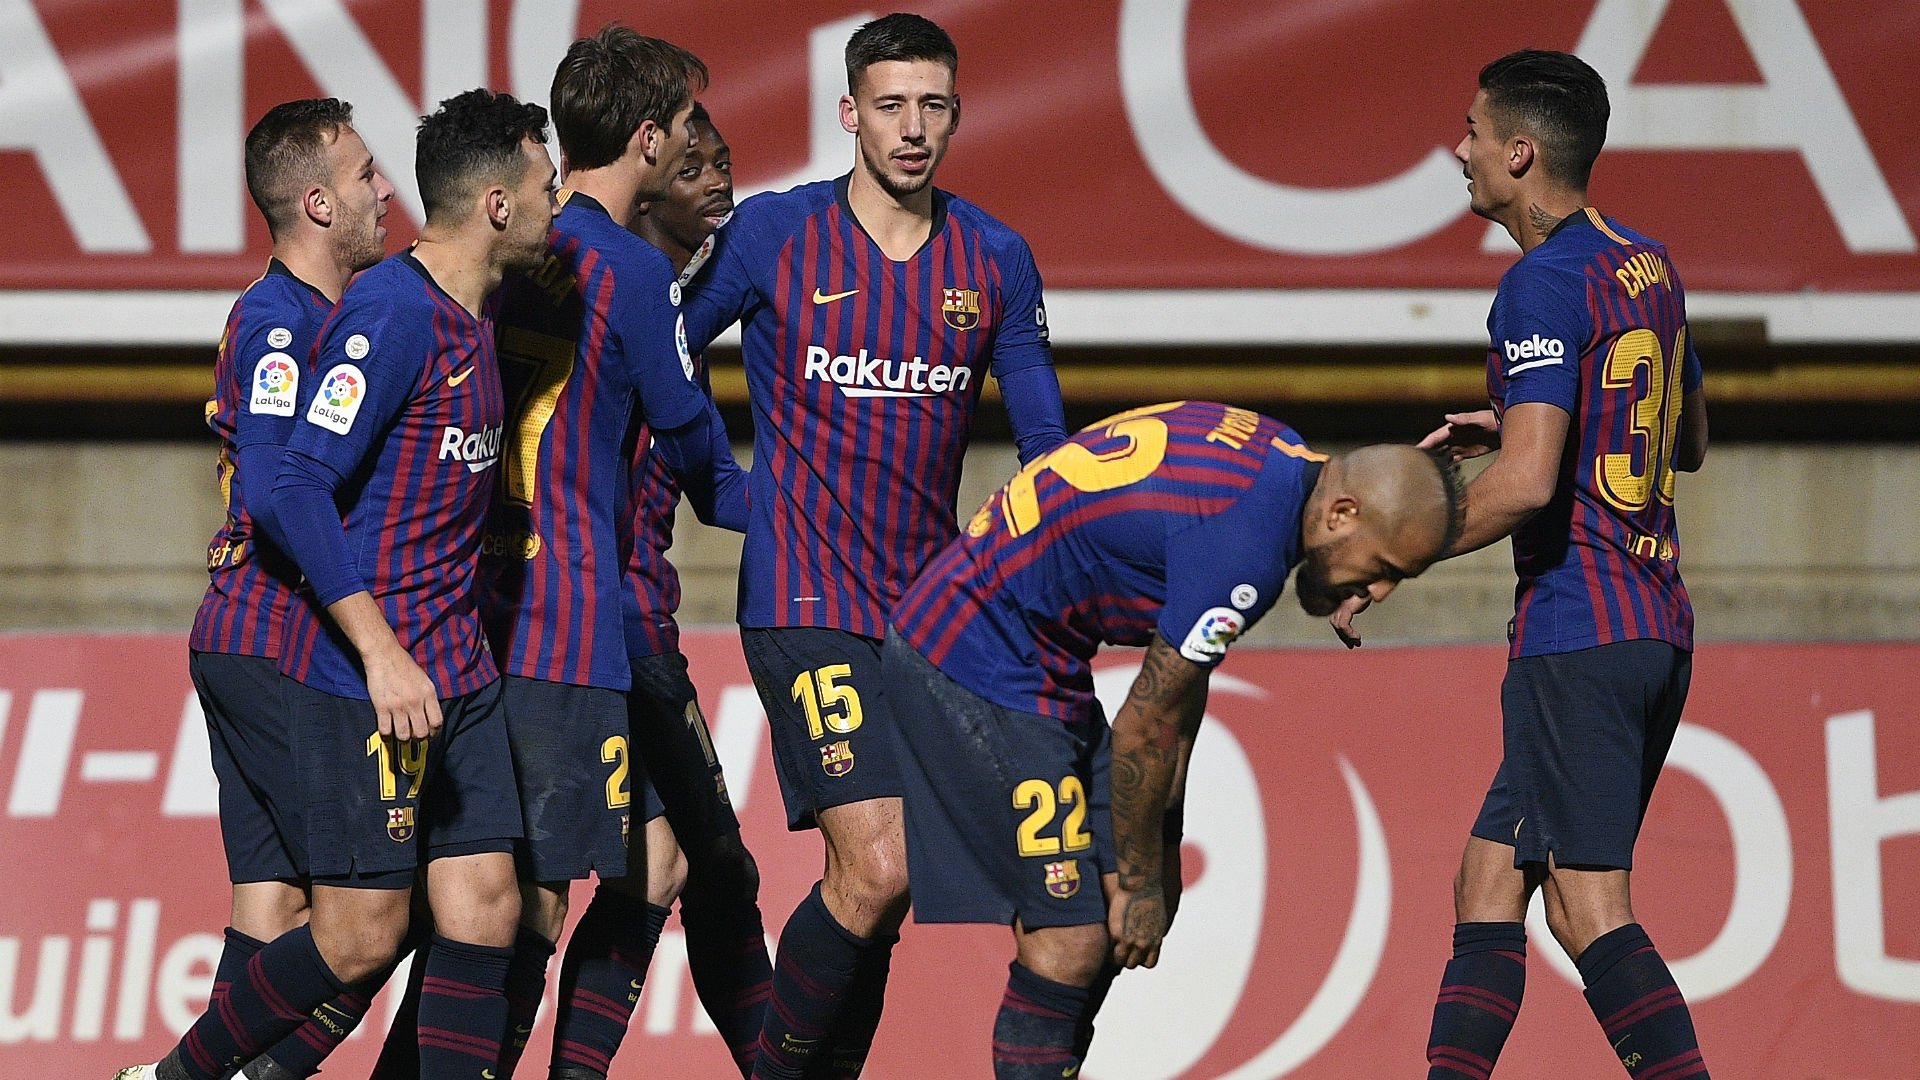 Barcelona will be without Malcom for two weeks after ankle injury